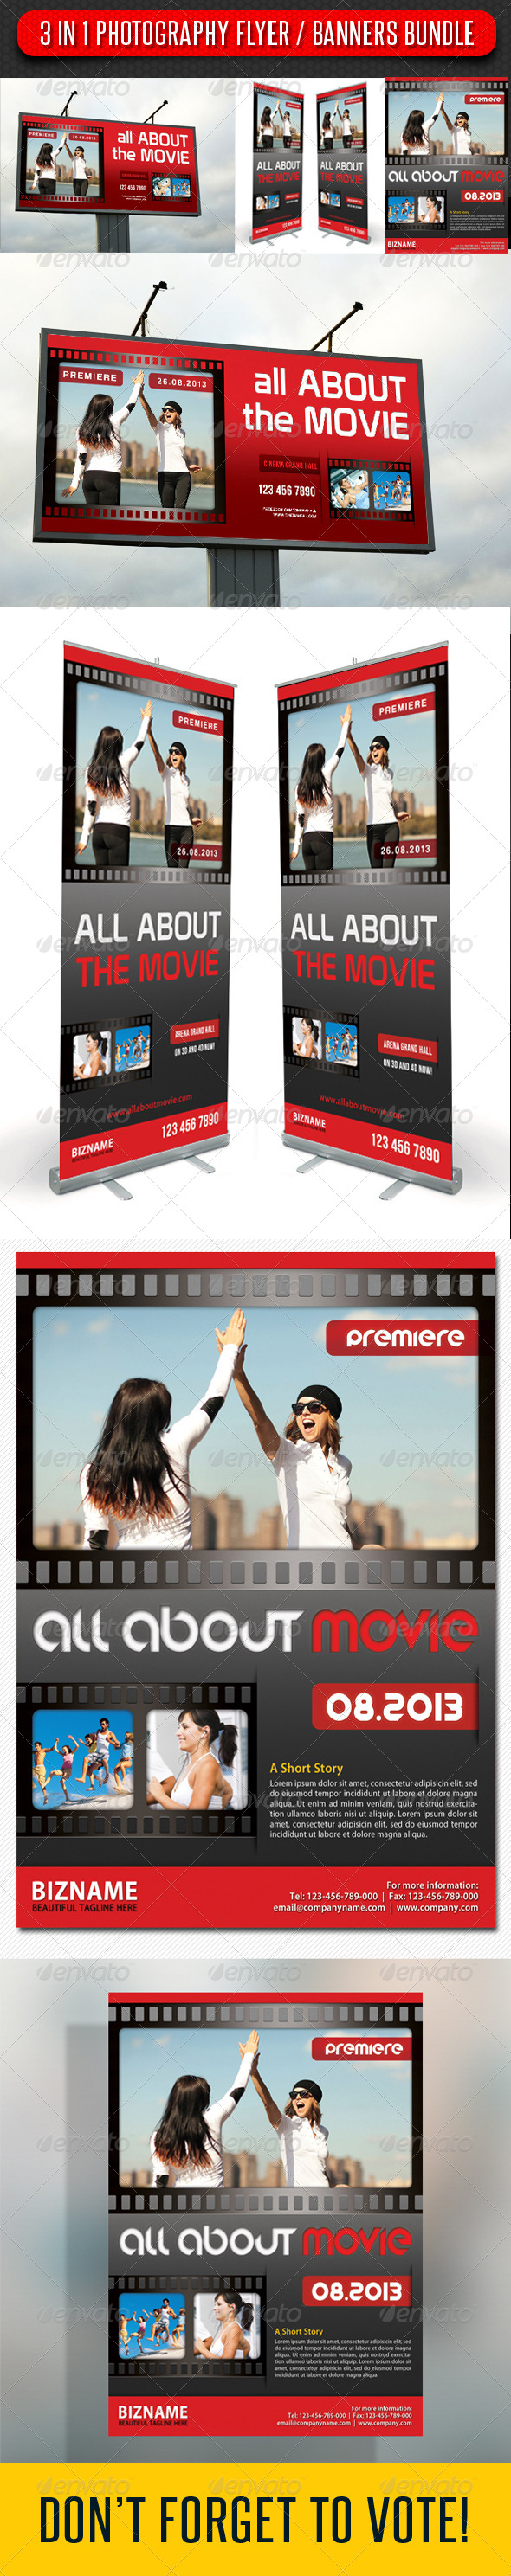 GraphicRiver 3 in 1 Photography Flyer and Banners Bundle 03 7985672